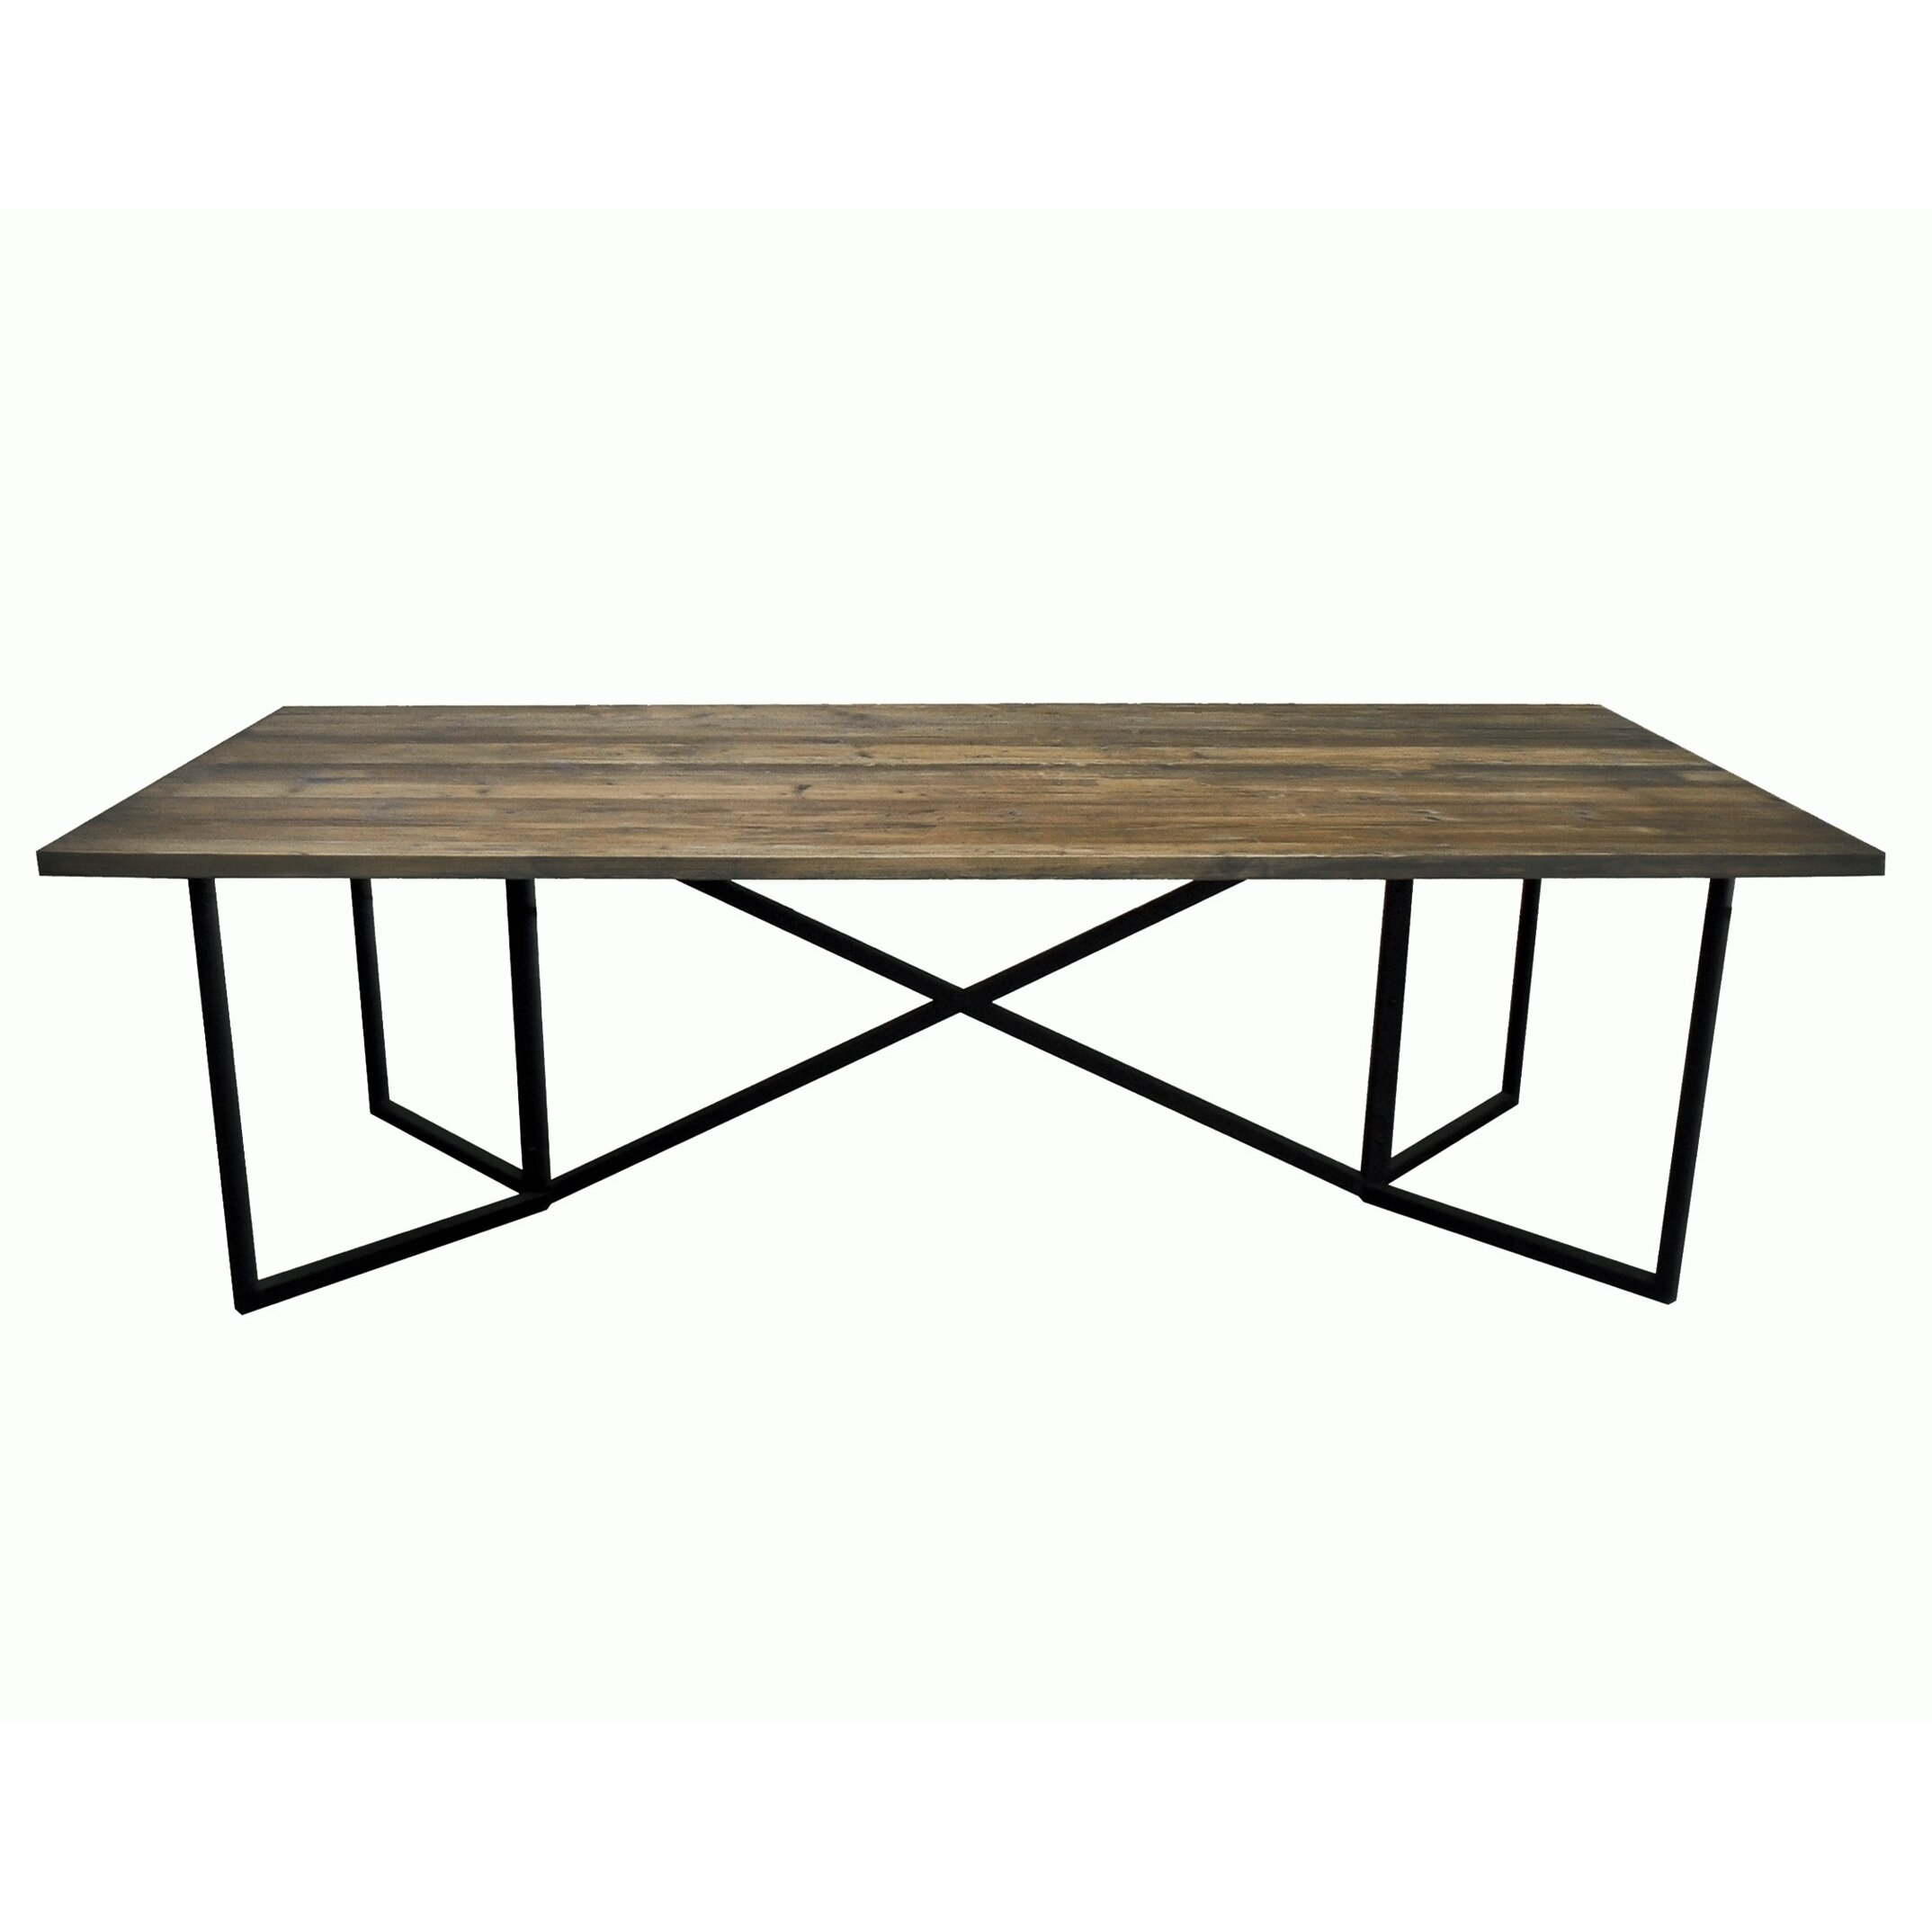 White x white calloway dining table reviews wayfair for Table x reviews